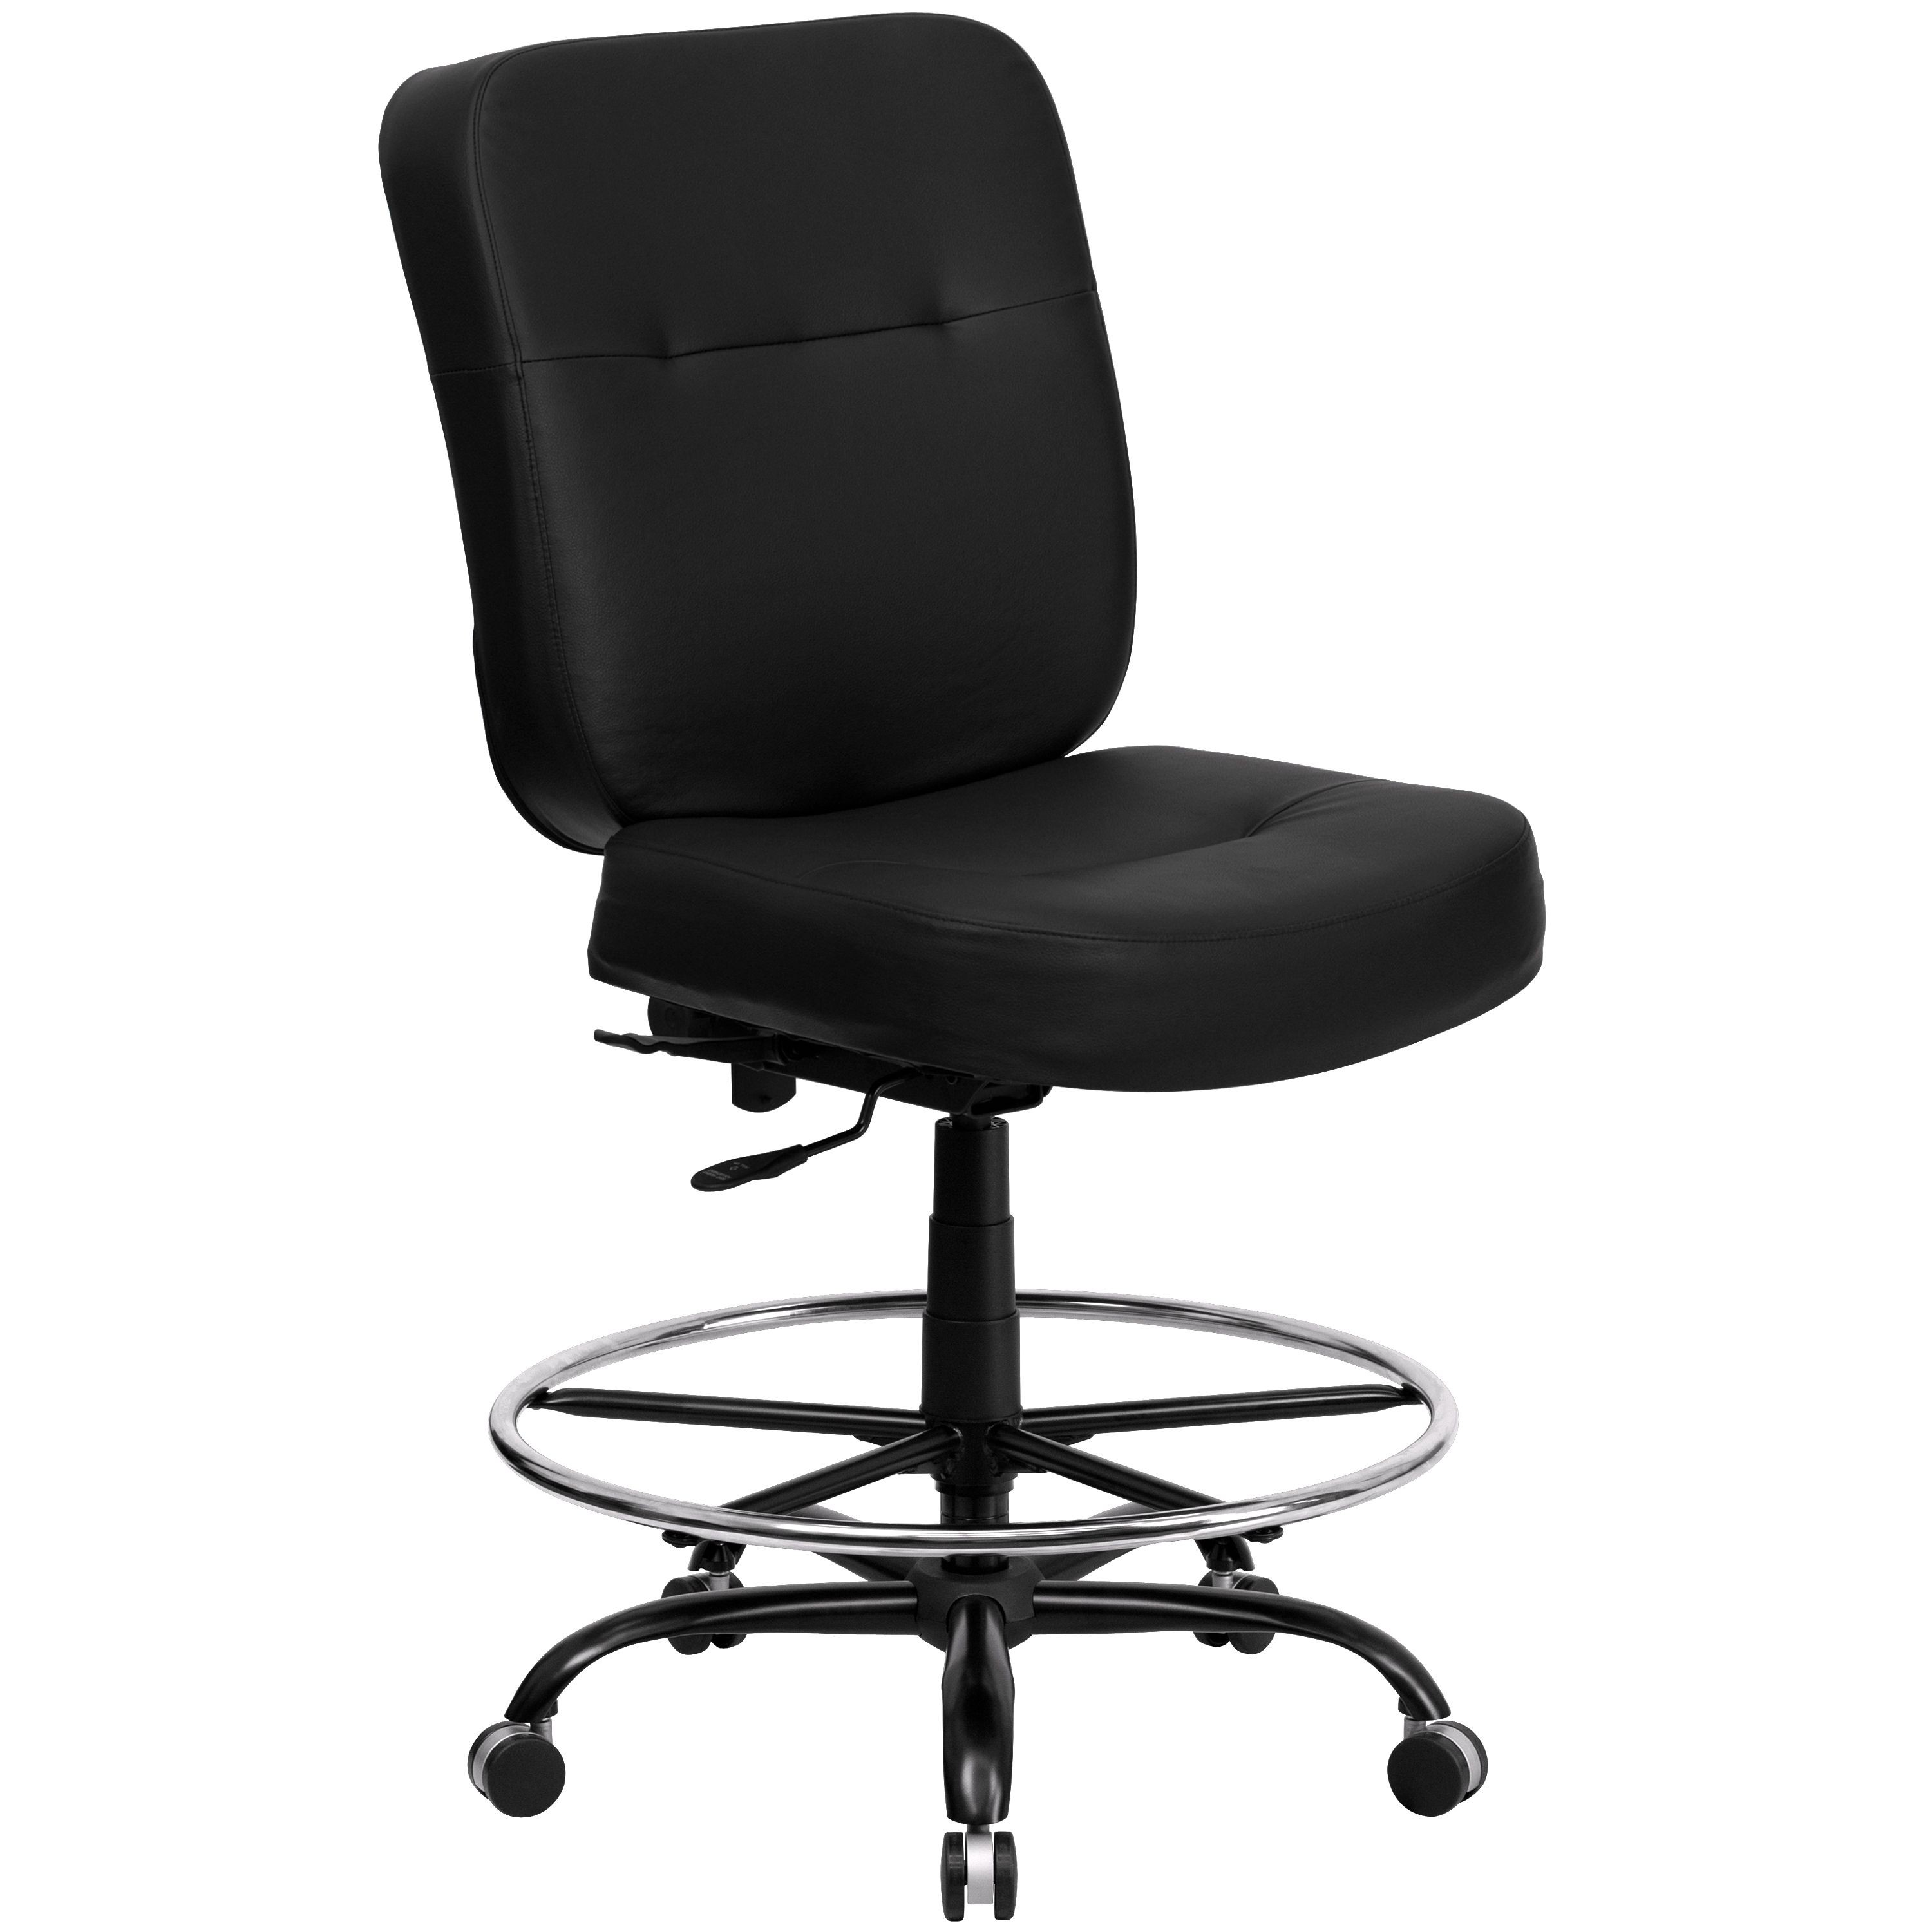 HERCULES Series 400 lb. Capacity Big & Tall Black Leather Drafting Stool with Extra WIDE Seat